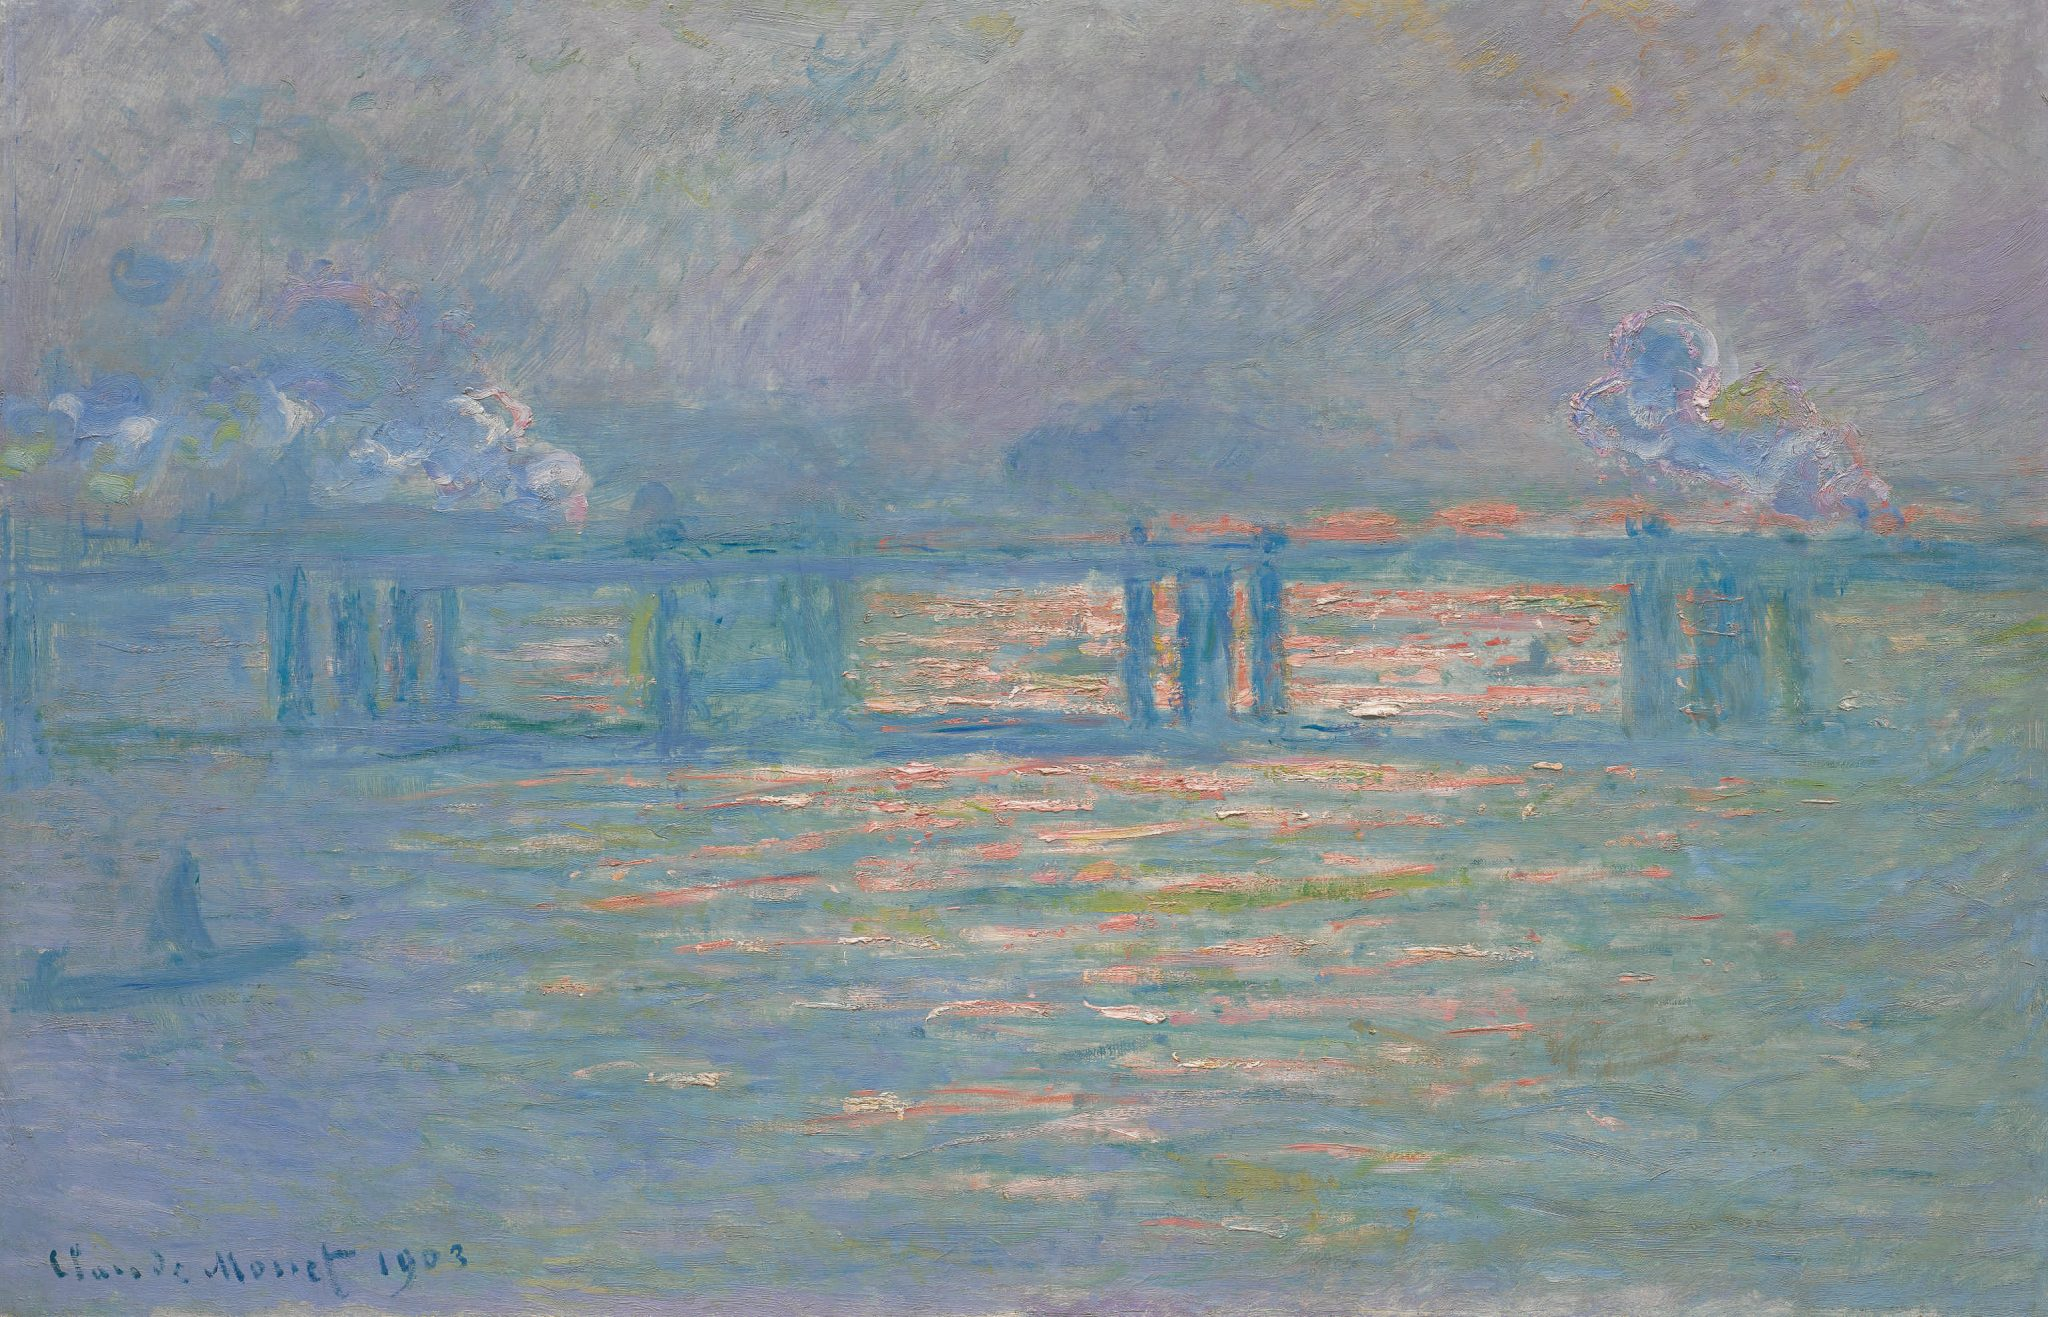 Impressionist and modern art sale Sotheby's New York novembre 2019, Claude Monet, Charing Cross Bridge, 1899-1901